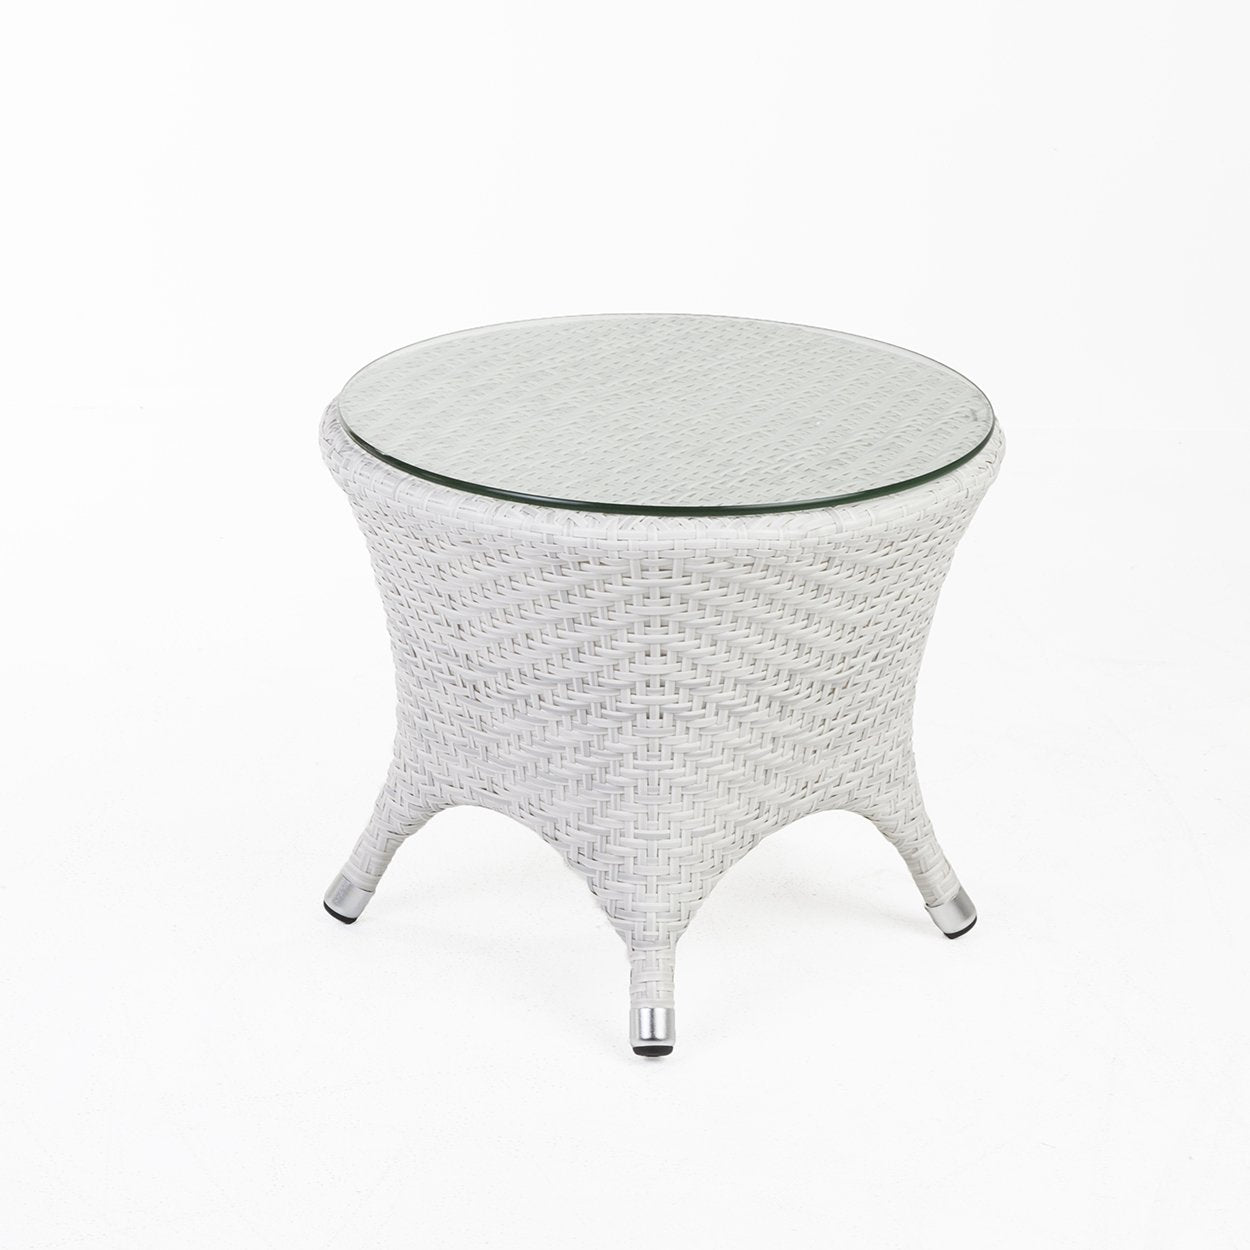 [FCT7664WHT] Danica outdoor END TABLE W/CLEAR GLASS TOP Sale